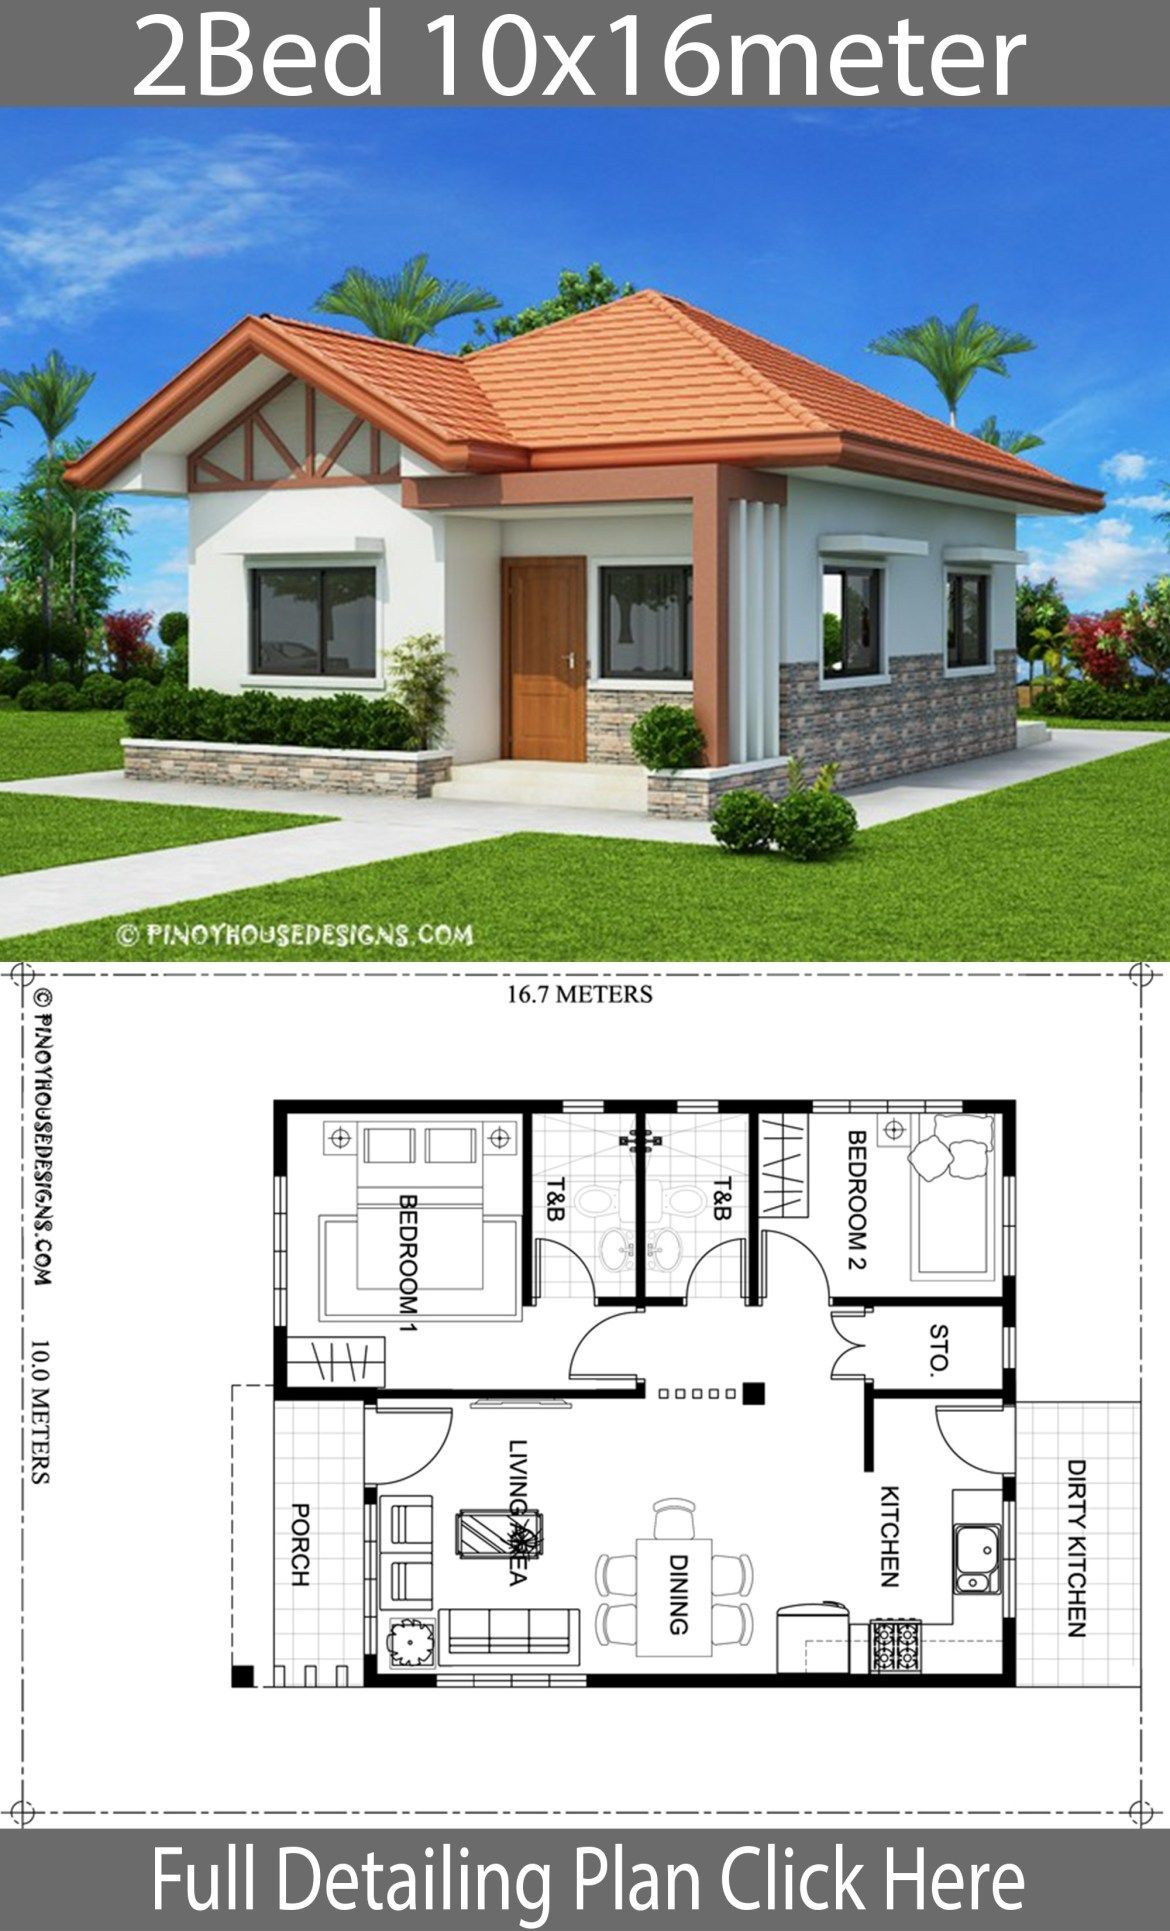 Home Design Plan 10x16m With 2 Bedrooms House Plans House Plans